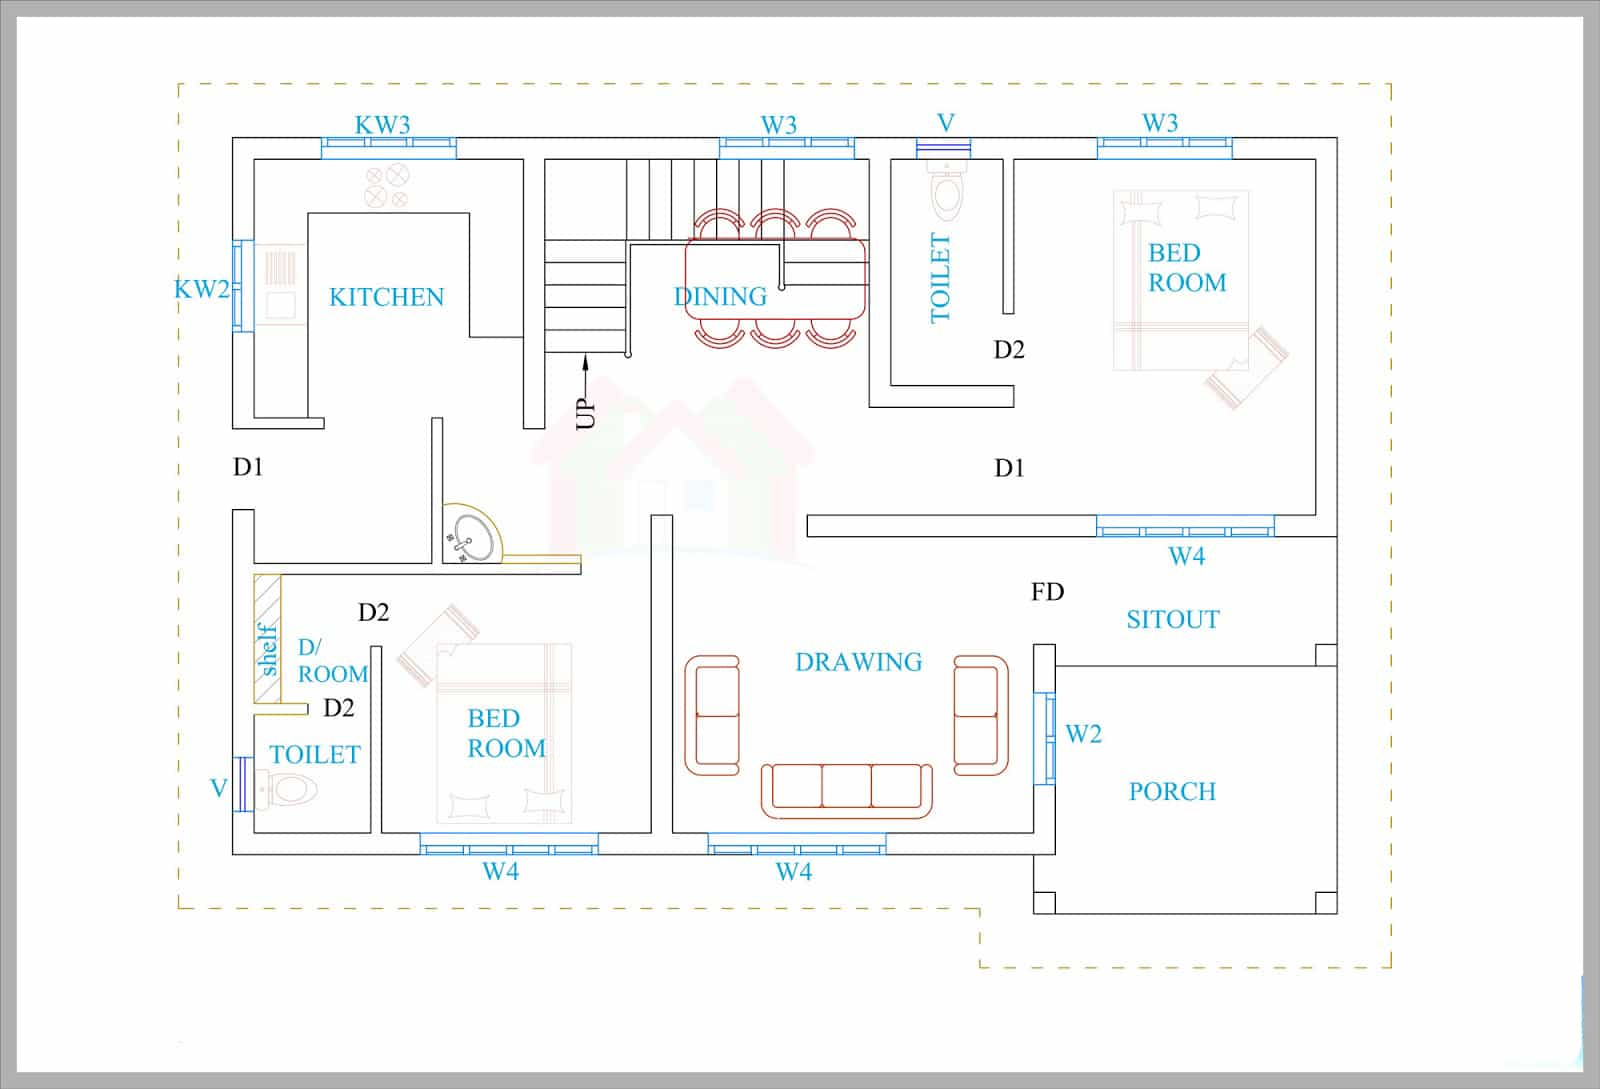 Kerala House Plans For A 1600 Sq.ft 3BHK House